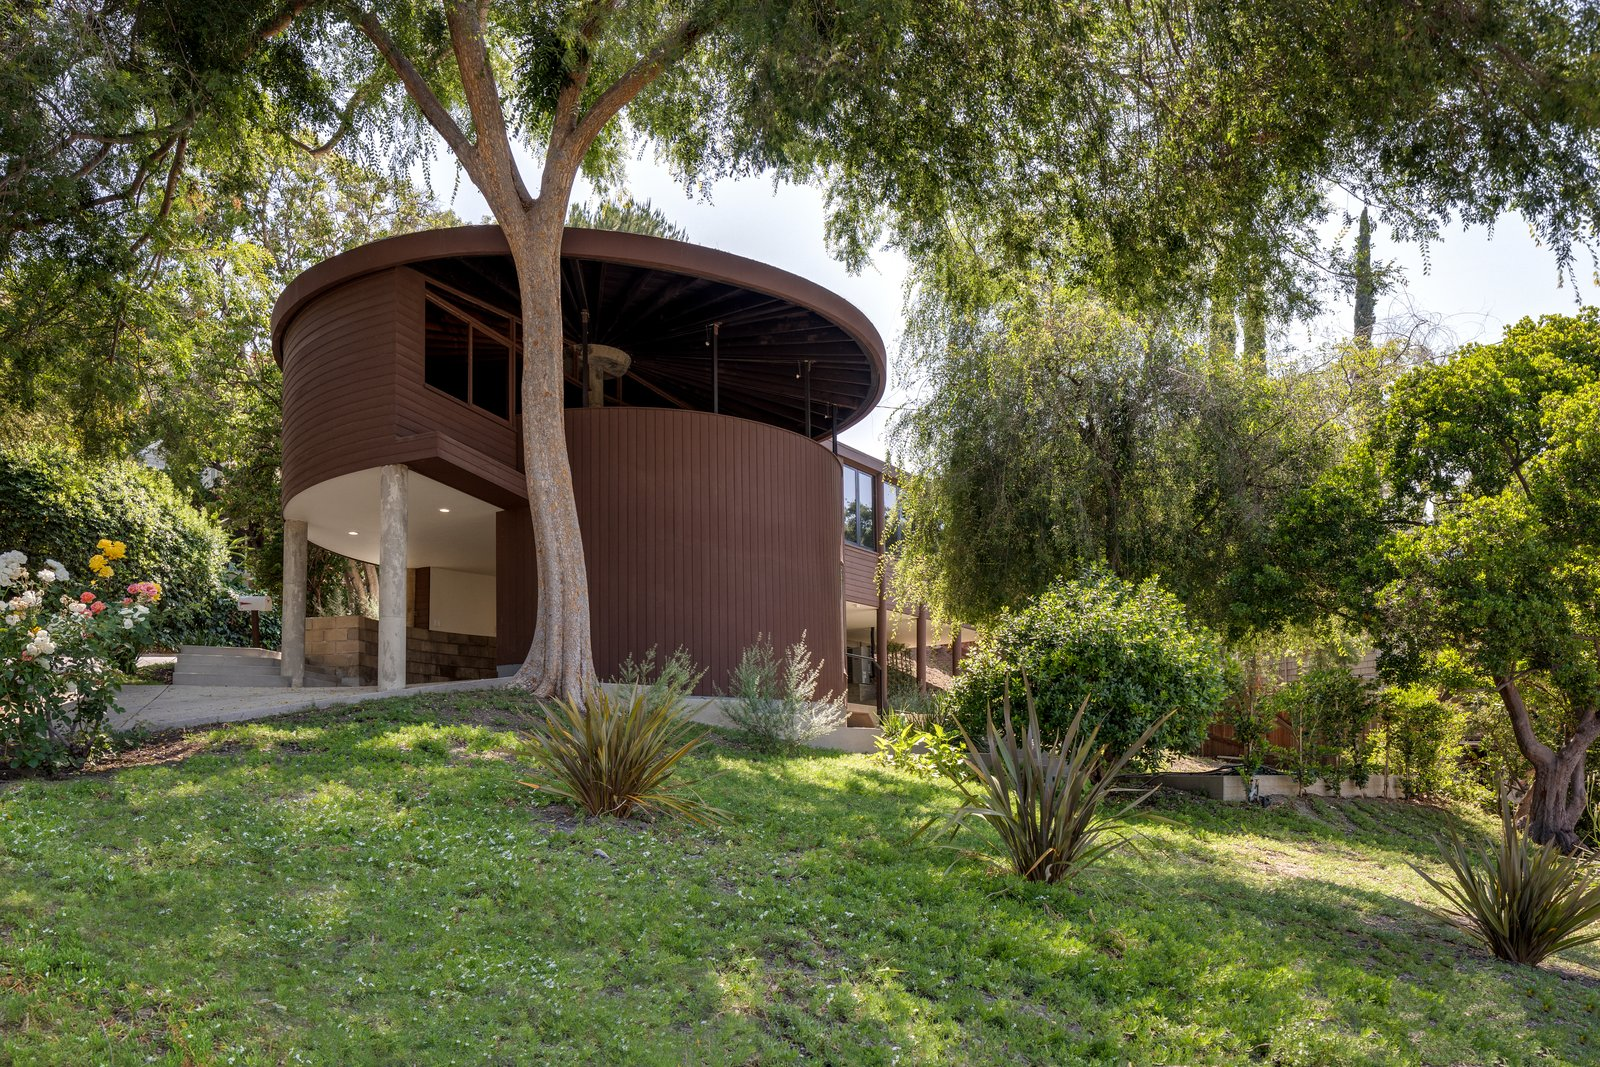 Exterior, House Building Type, Flat RoofLine, and Wood Siding Material  Photo 1 of 8 in Claim This Curvaceous L.A. Home by John Lautner For $1.6M